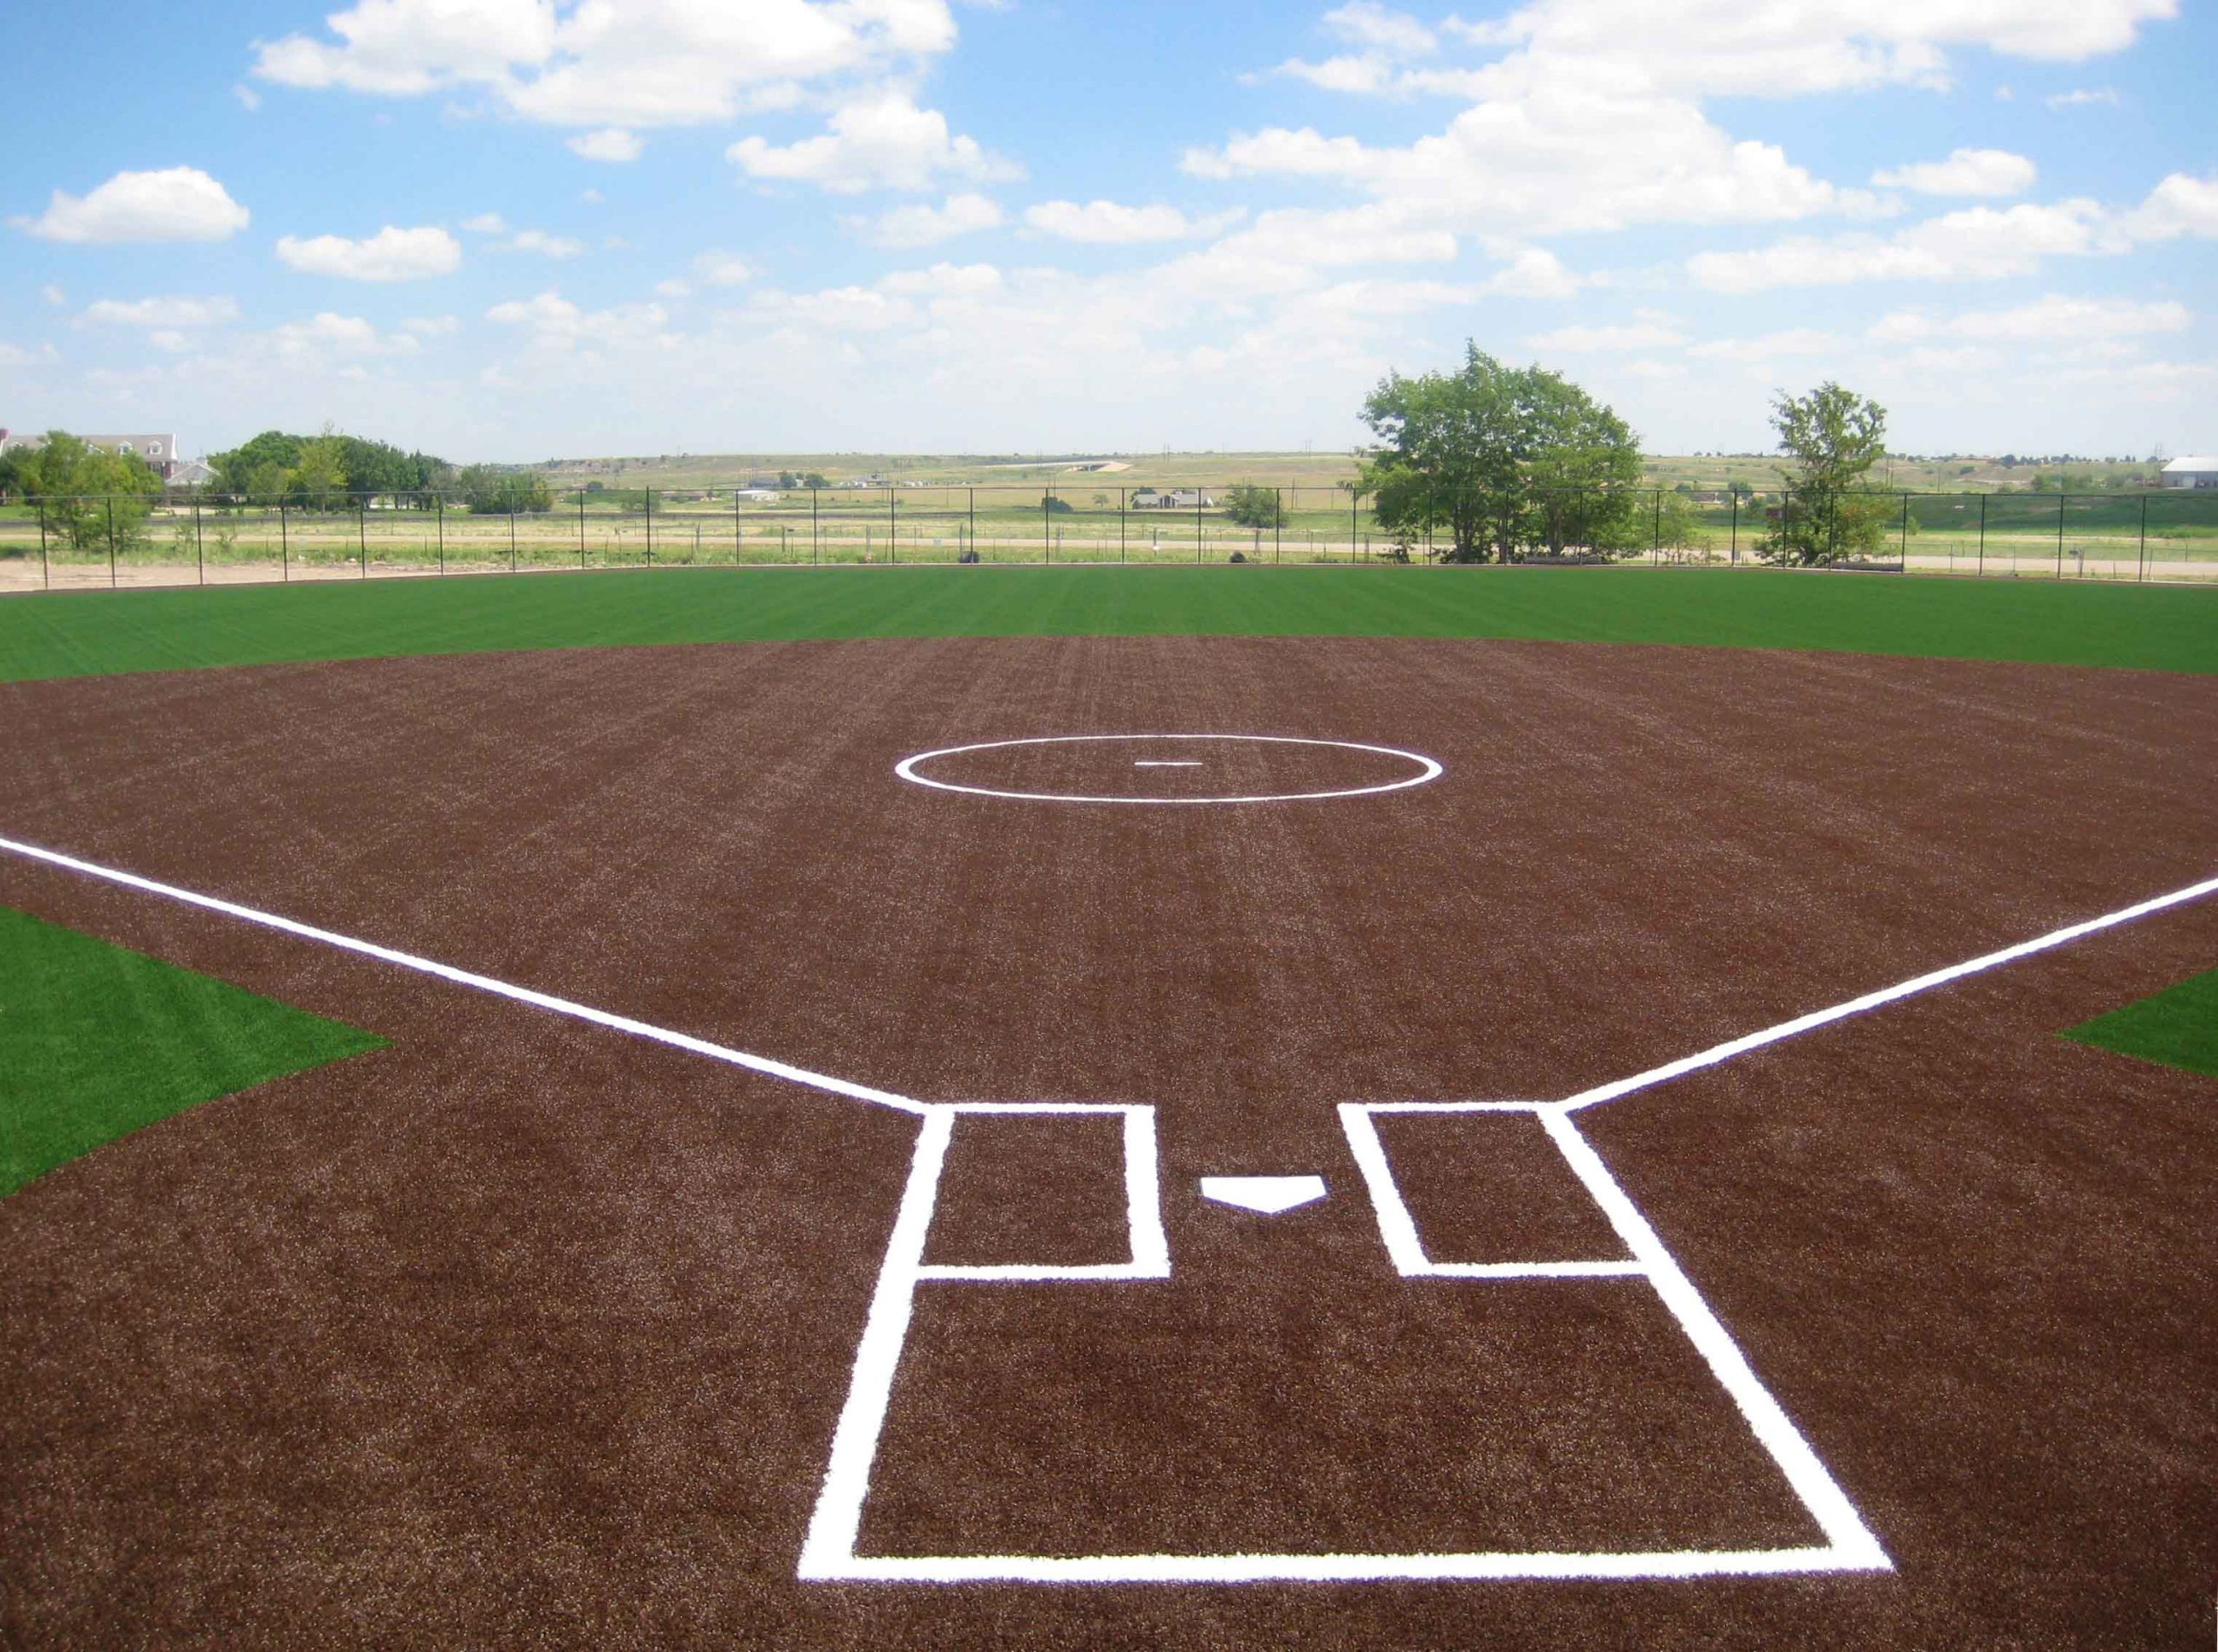 38 Softball Backgrounds Download Free Hd Backgrounds: Softball Wallpapers High Quality